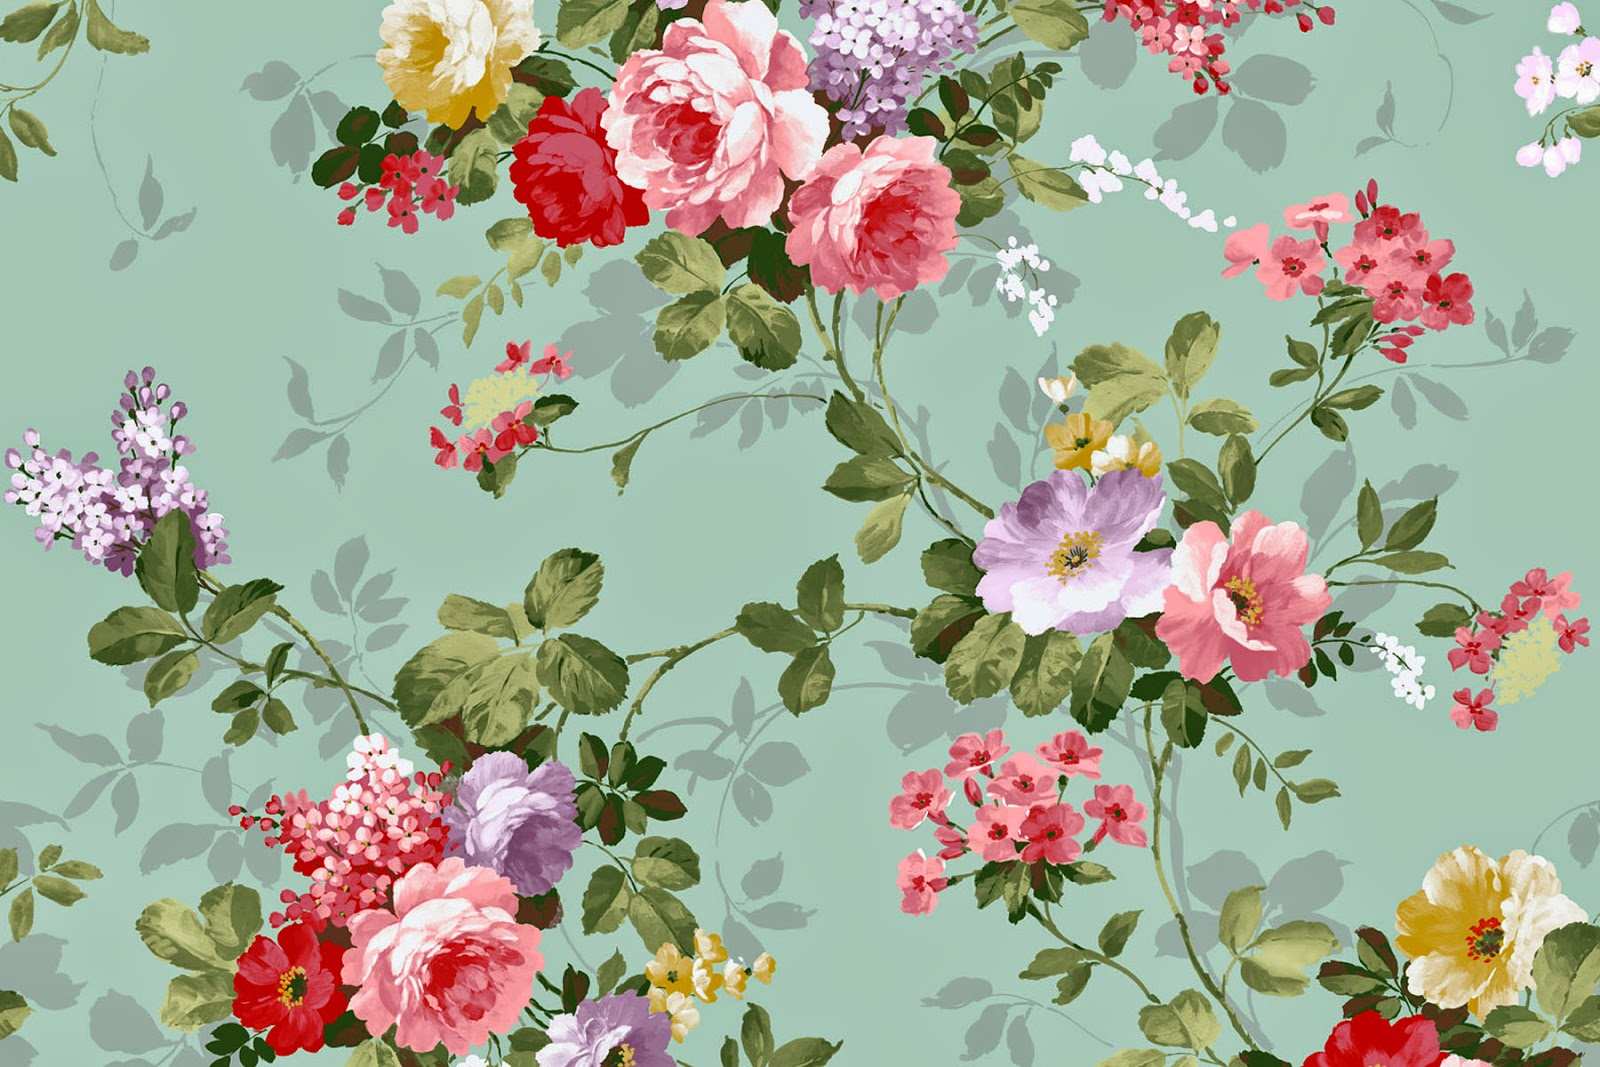 3e3267ae2fb7 Doodlecraft  Vintage Floral Wallpaper Freebies!